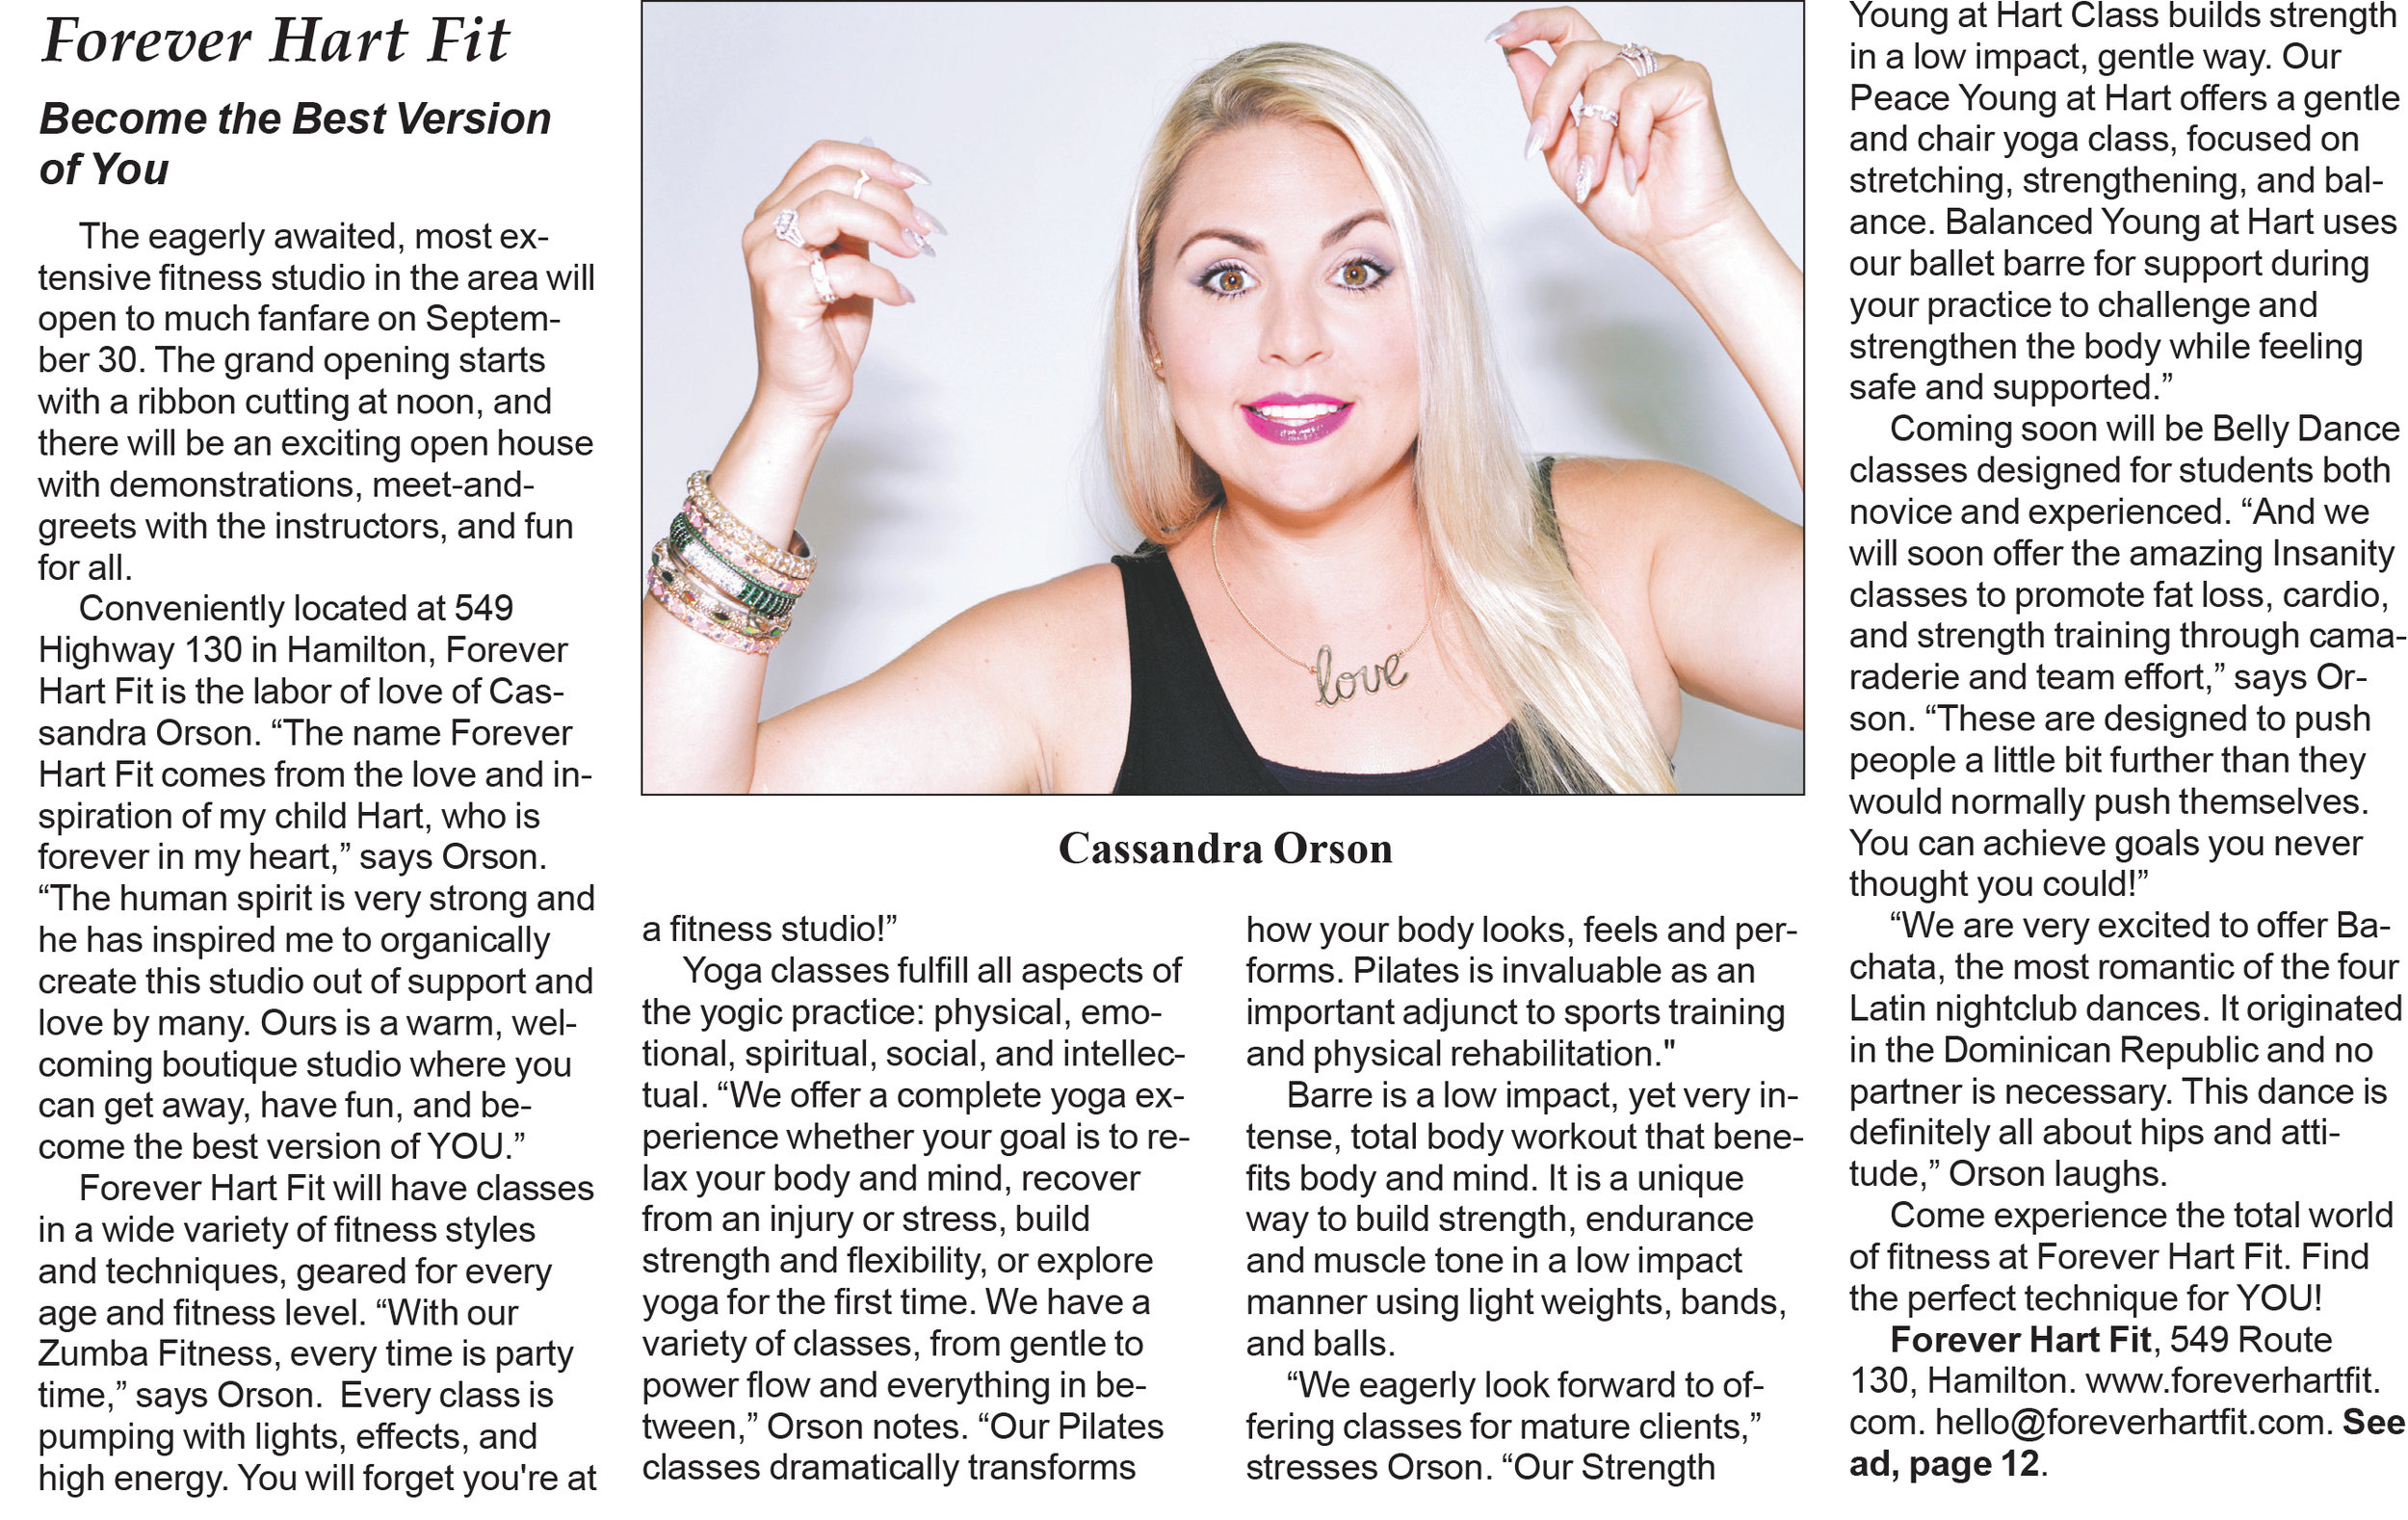 Back to School Guide, Sept. 2017 - Cassandra Orson, Forever Hart Fit's fabulous founder and owner, has a featured interview and ad in this year's Back to School Guide! Cassandra talks in depth about the studio's origins, our incredible fitness class options, and our goal to be a welcoming space for everyone to get fit and have fun! We hope we can help you become the best version of yourself at Forever Hart Fit!!Be sure to check your Back to School Guide in the following papers for a hard copy:Hamilton PostRobbinsville AdvanceBordentown CurrentTrenton DowntownerEwing ObserverLawrence GazettePrinceton EchoWest Windsor & Plainsboro NewsHopewell Express